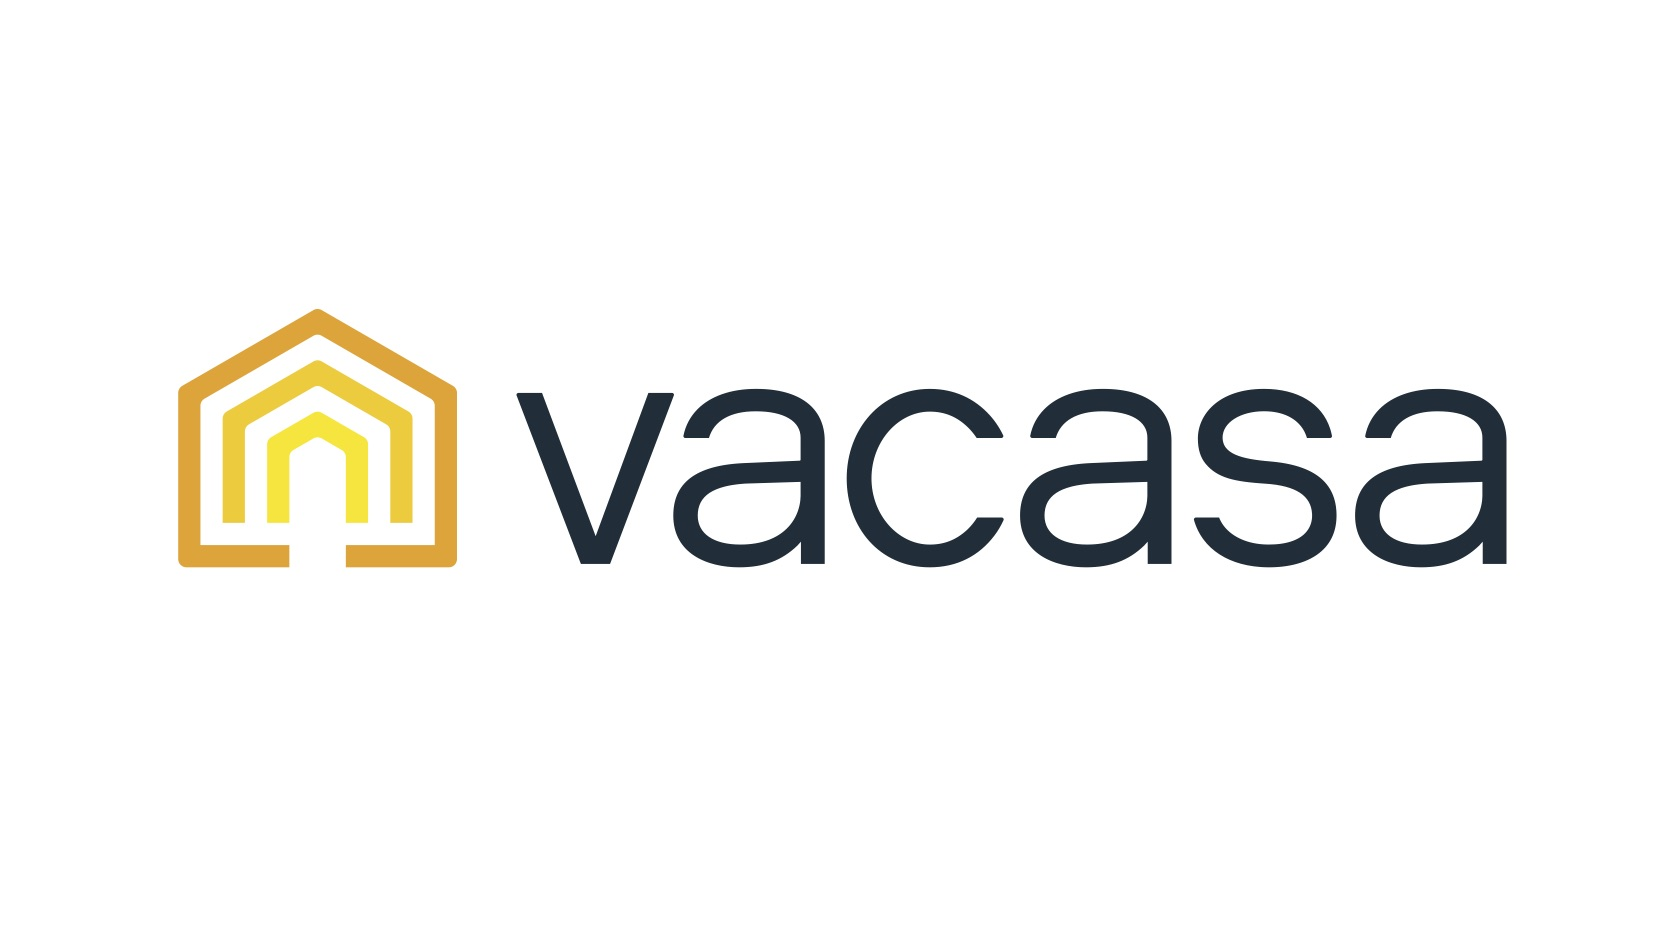 Vacasa-Logo_Horizontal-Color-JPEG.jpg